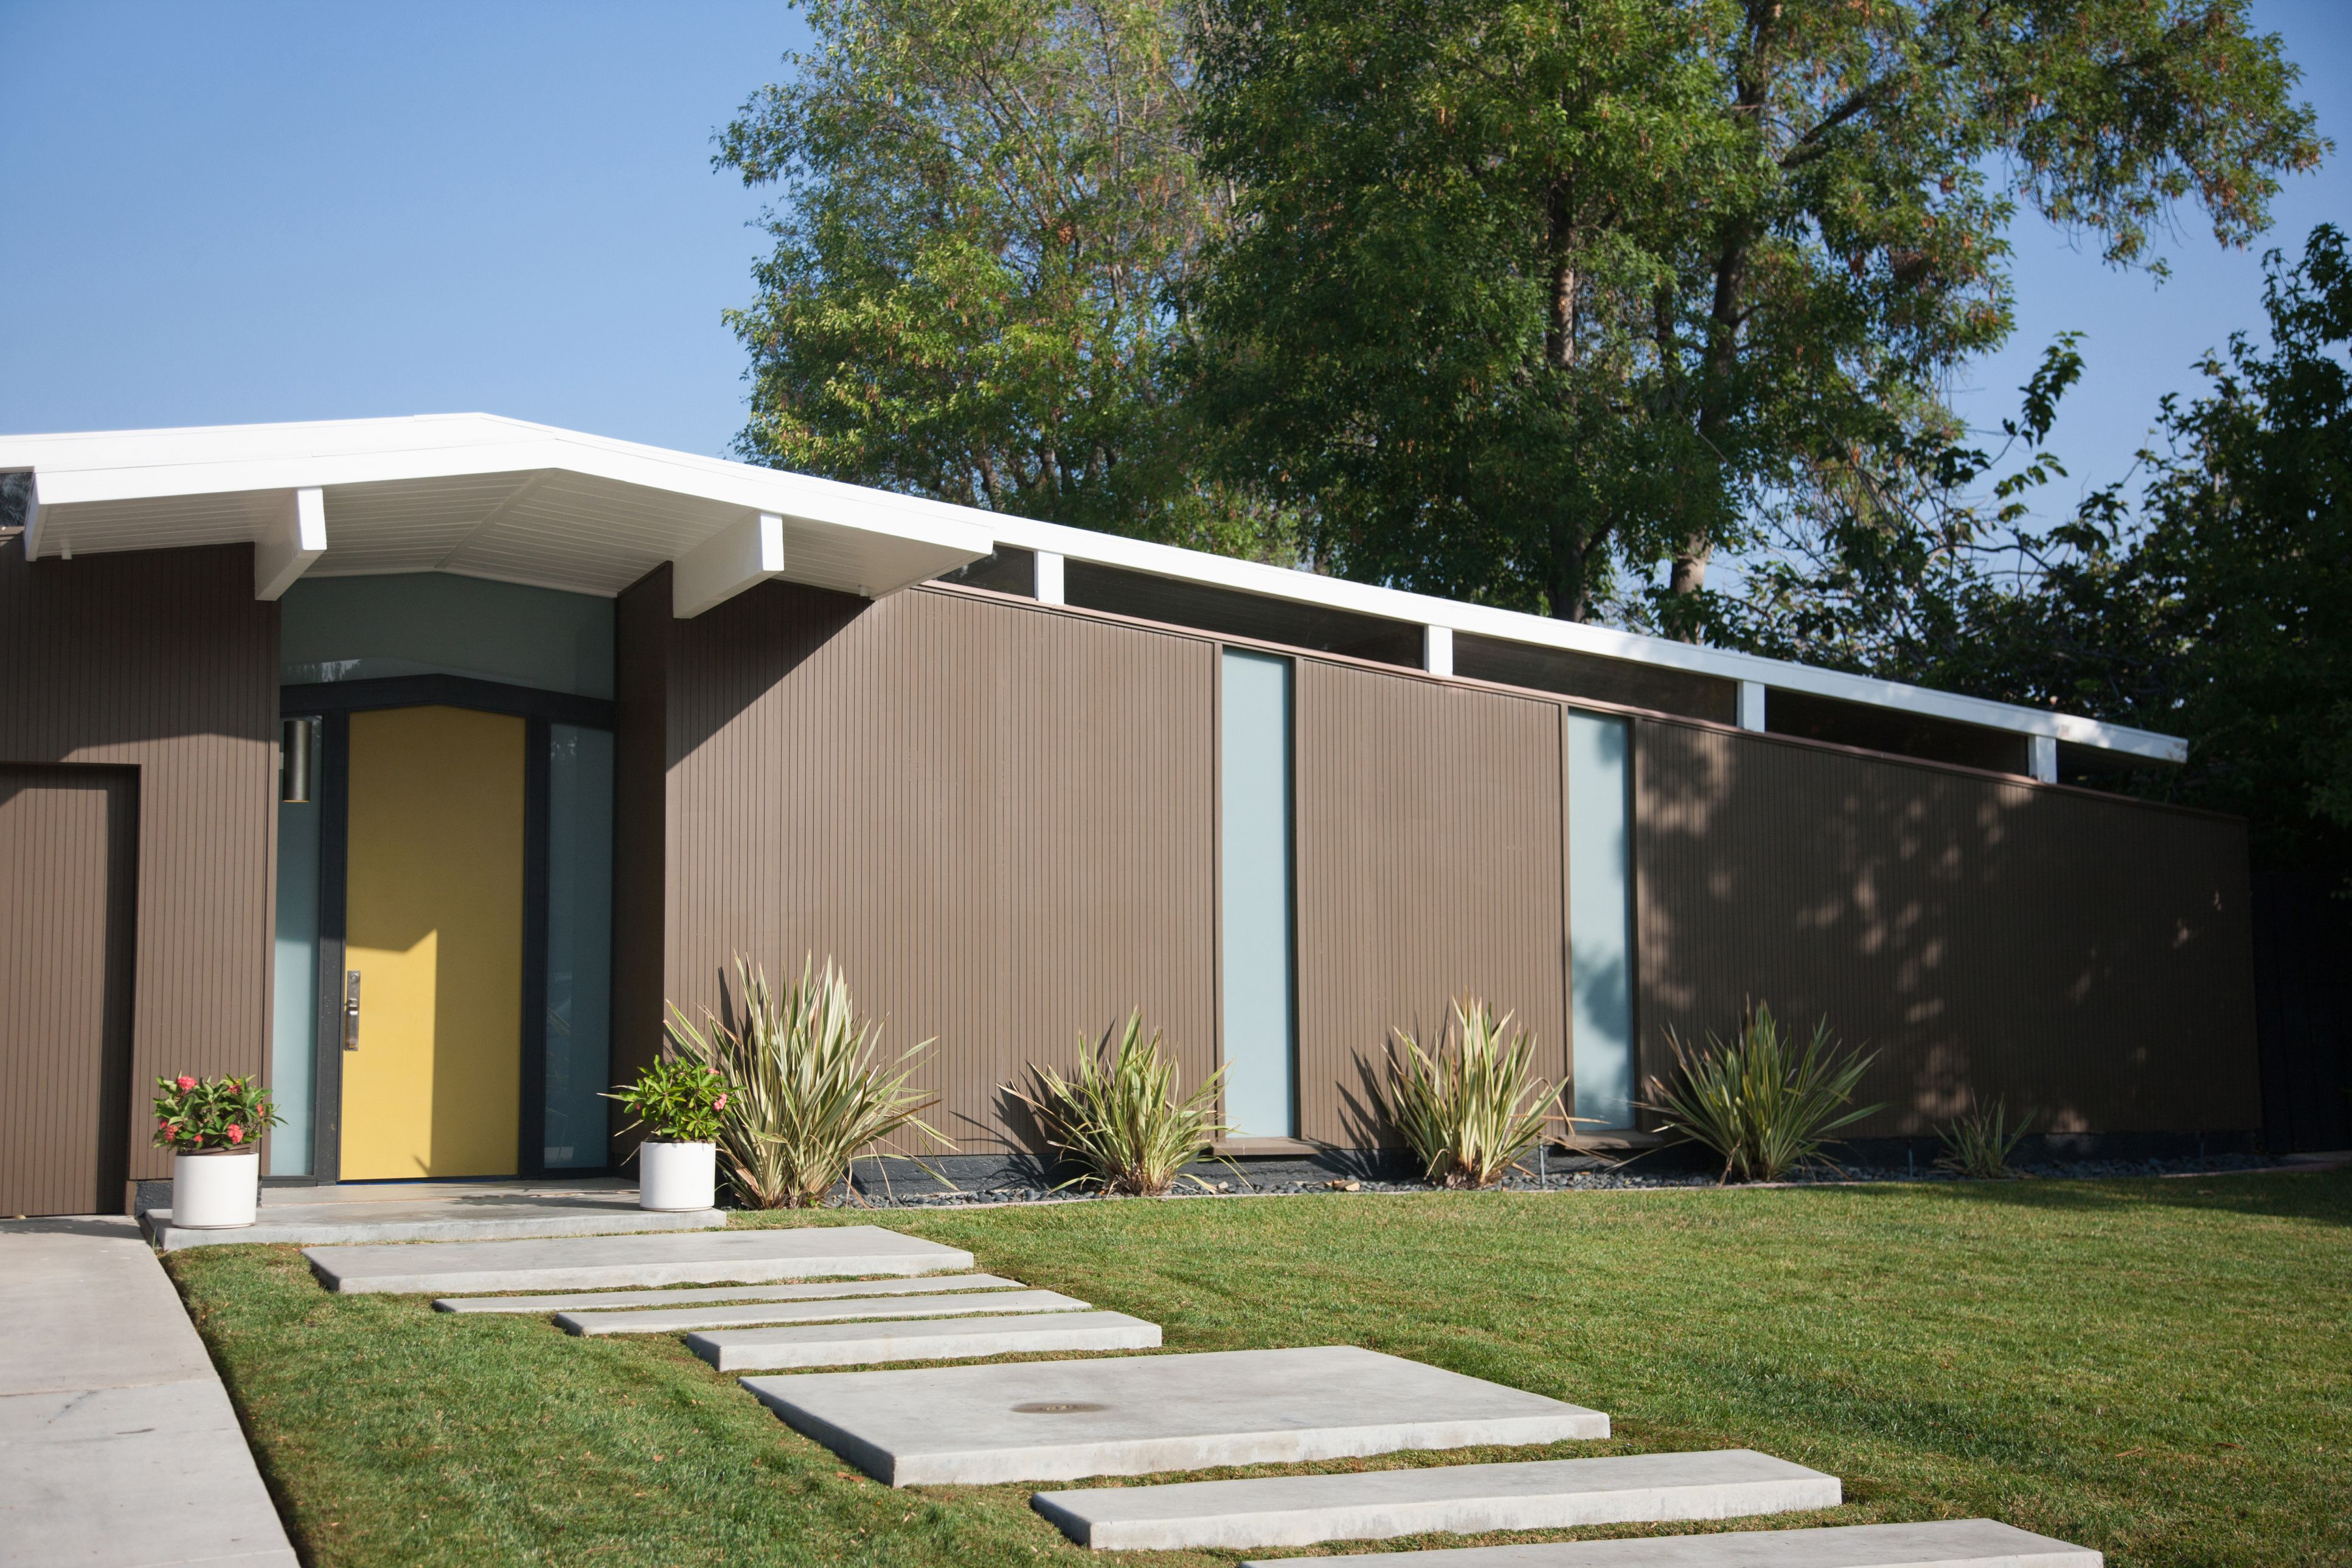 An Eichler house with a yellow door